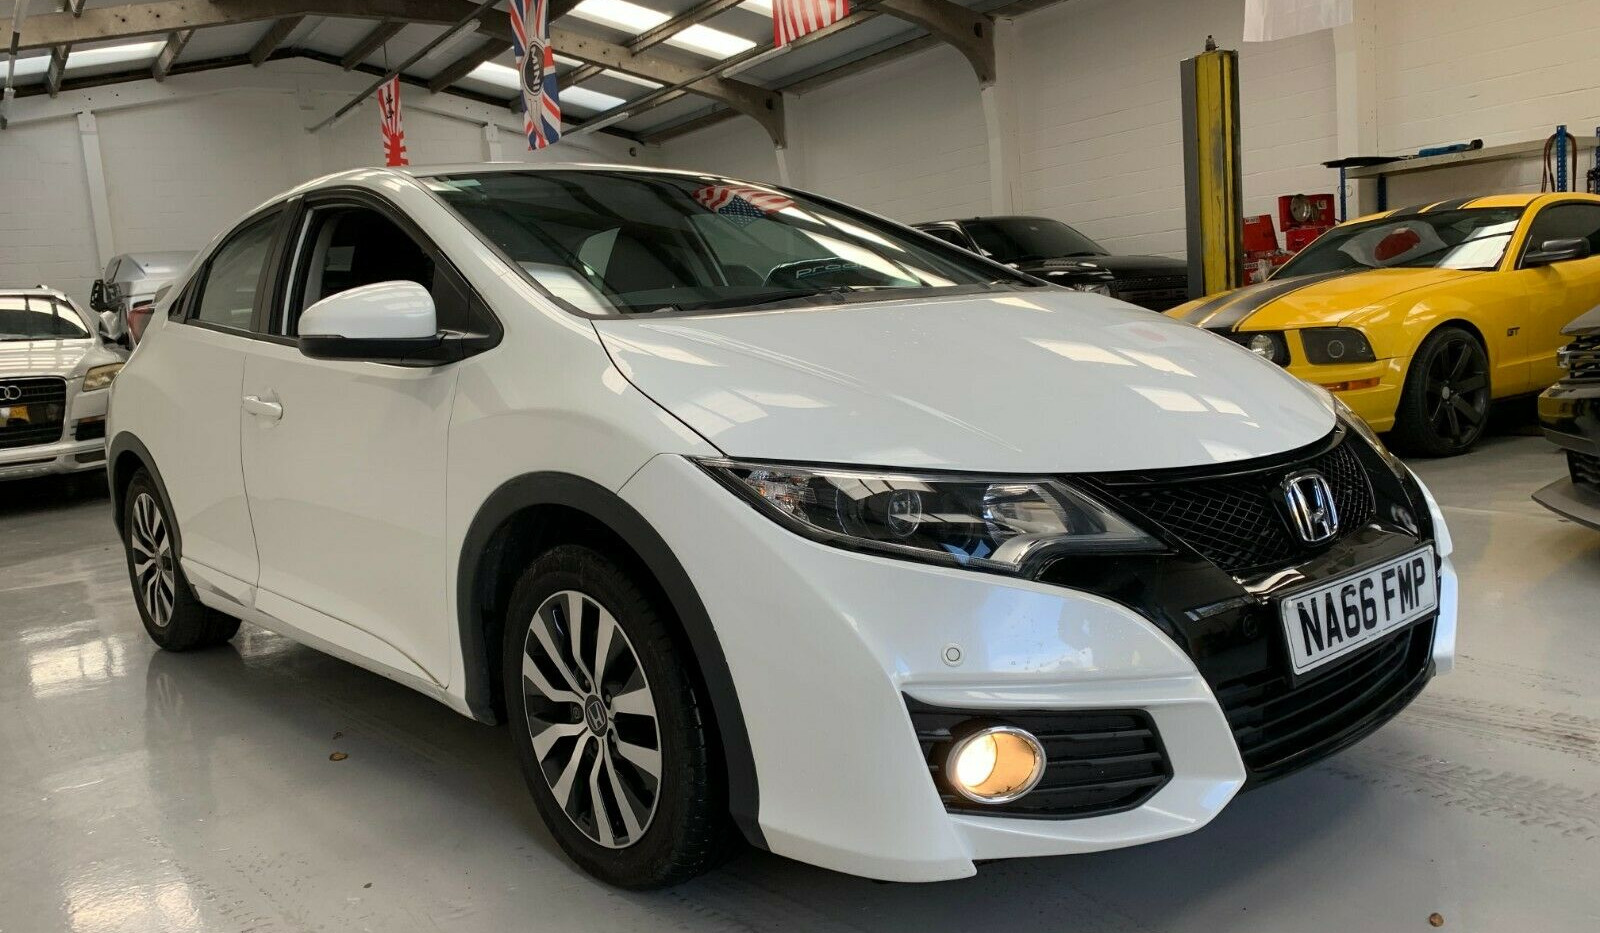 2017 HONDA CIVIC - £7, 495  1.6 I-DTEC SE Plus (Navi) (s/s)  - Manual - 1.6 L - Hatchback - Diesel - 5 Doors - 5 Seats  Stunning looking and driving example!  Warranted 49,000 miles w/ full Honda service history. Still registered on the free Honda Service Plan until 60,000 miles.  An ideal model for modern and reliable family motoring